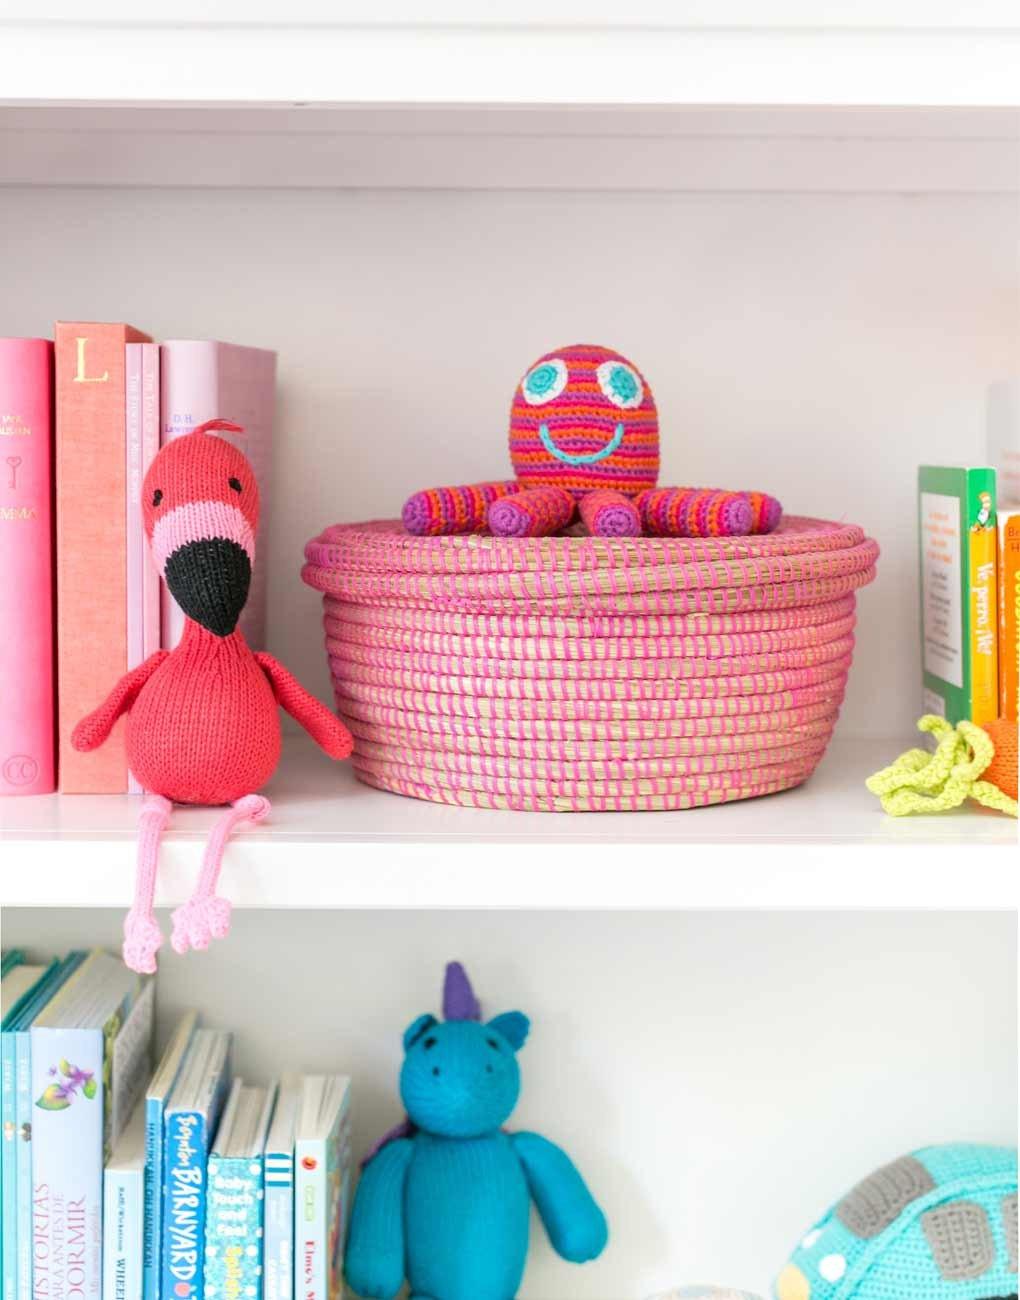 Woven baskets are a great option for kids' rooms